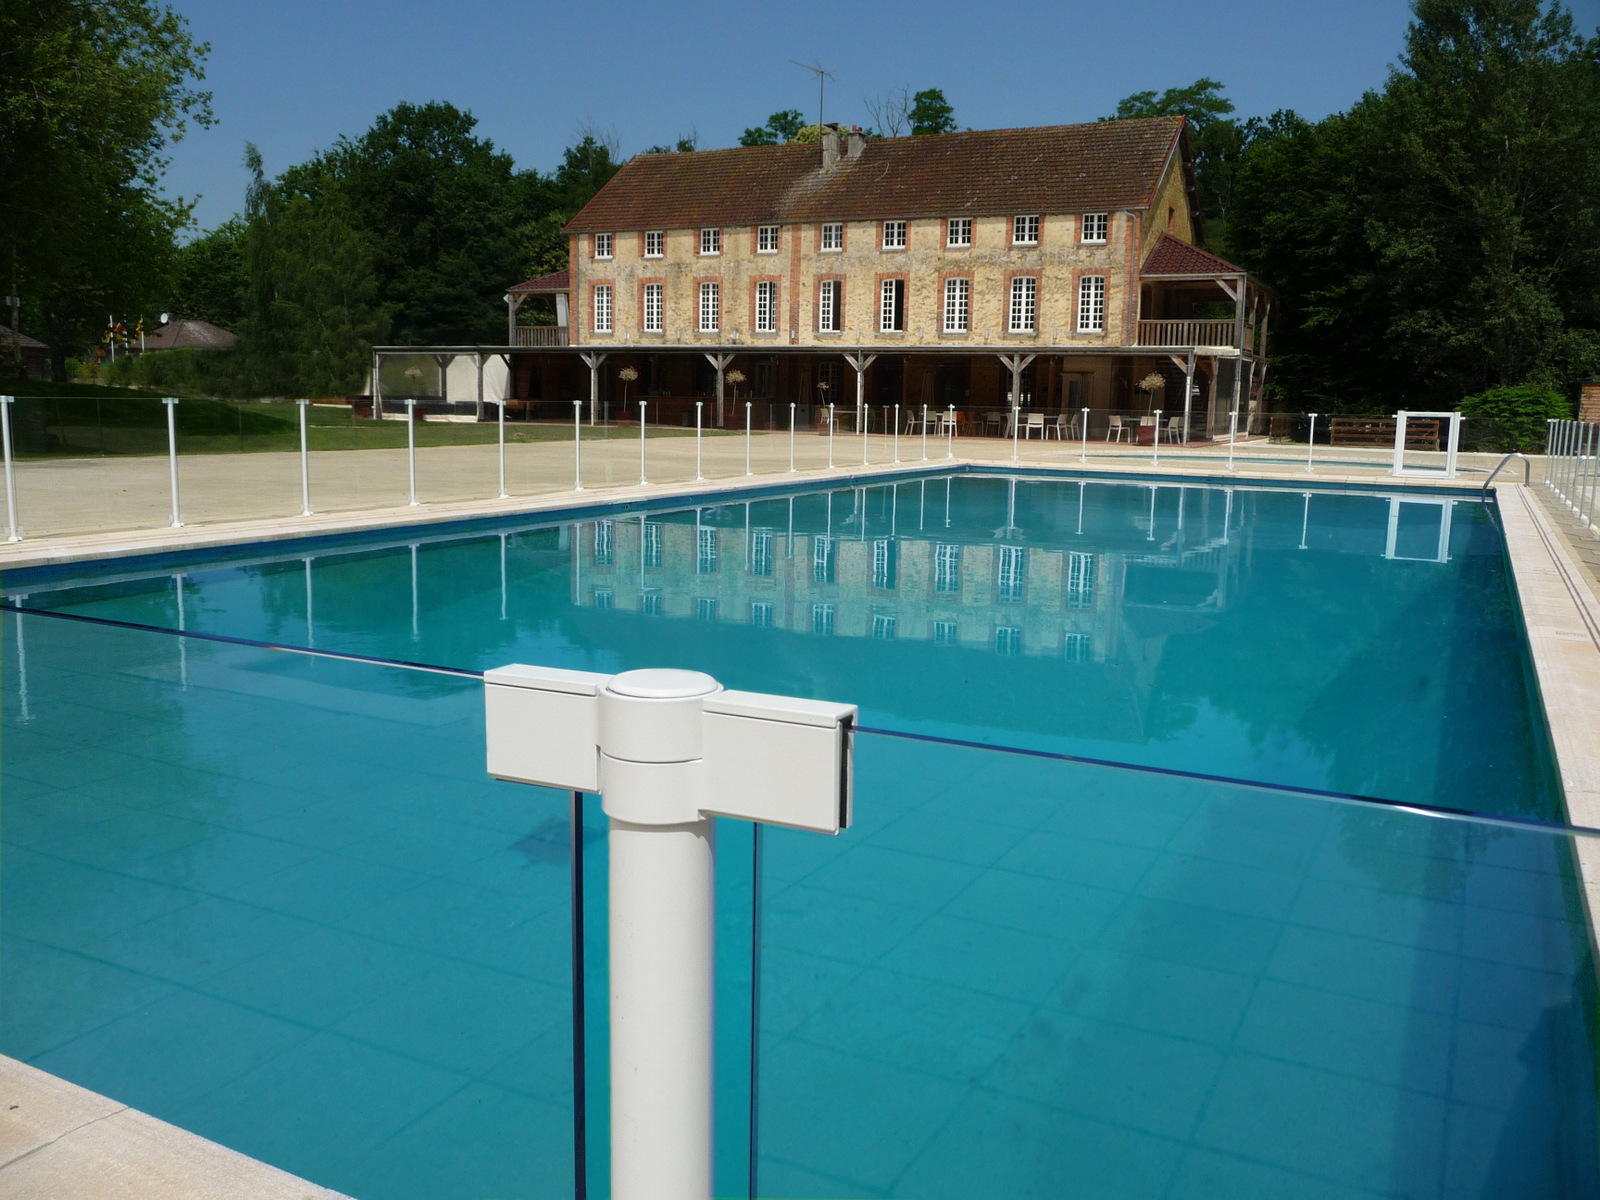 Barri re de piscine en aluminium et protection aluminium for Barrieres protection piscine